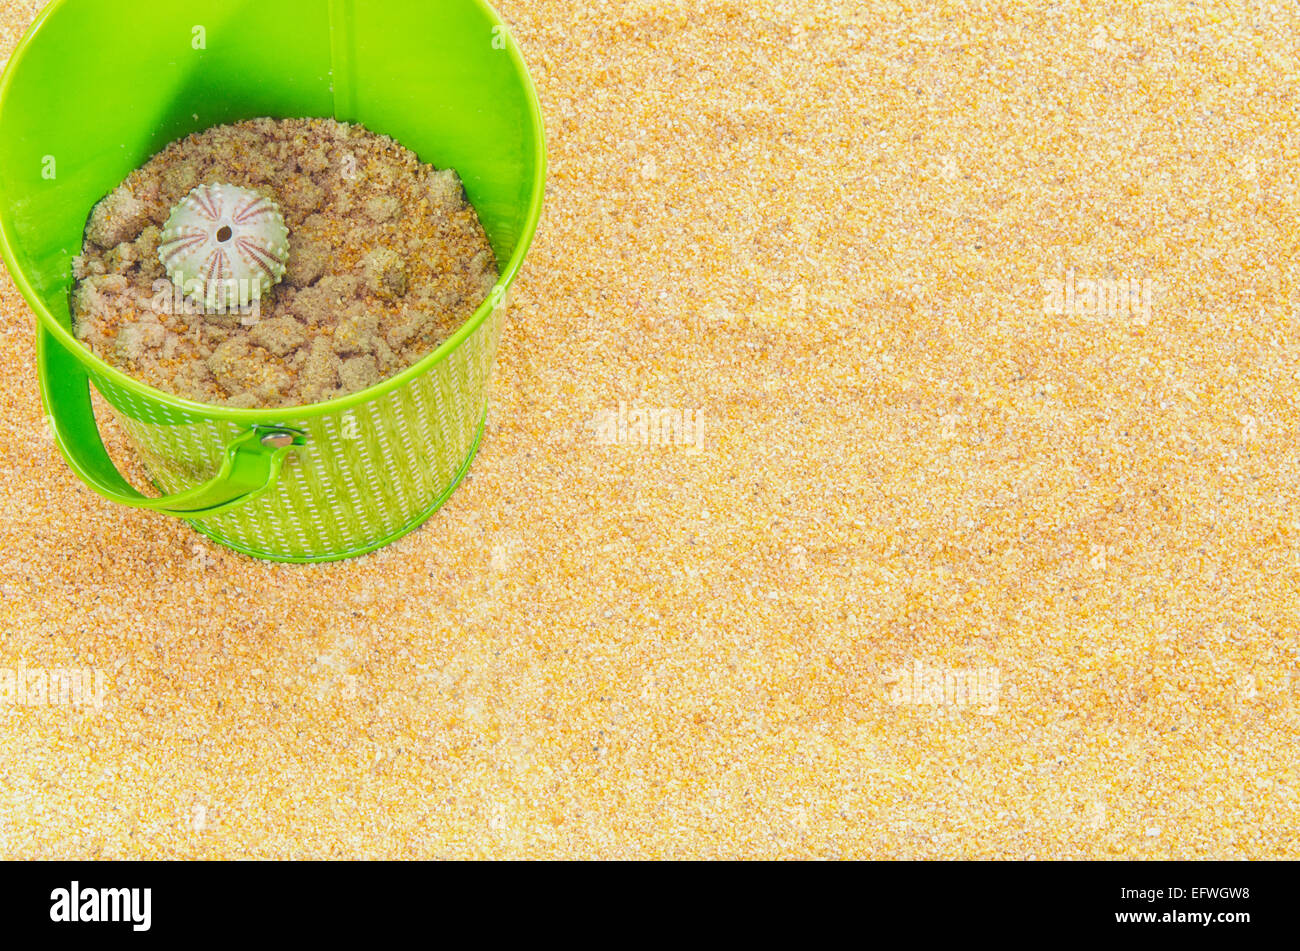 vintage-green-metal-bucket-white-polka-dots-on-sandy-beach-with-sea-EFWGW8.jpg